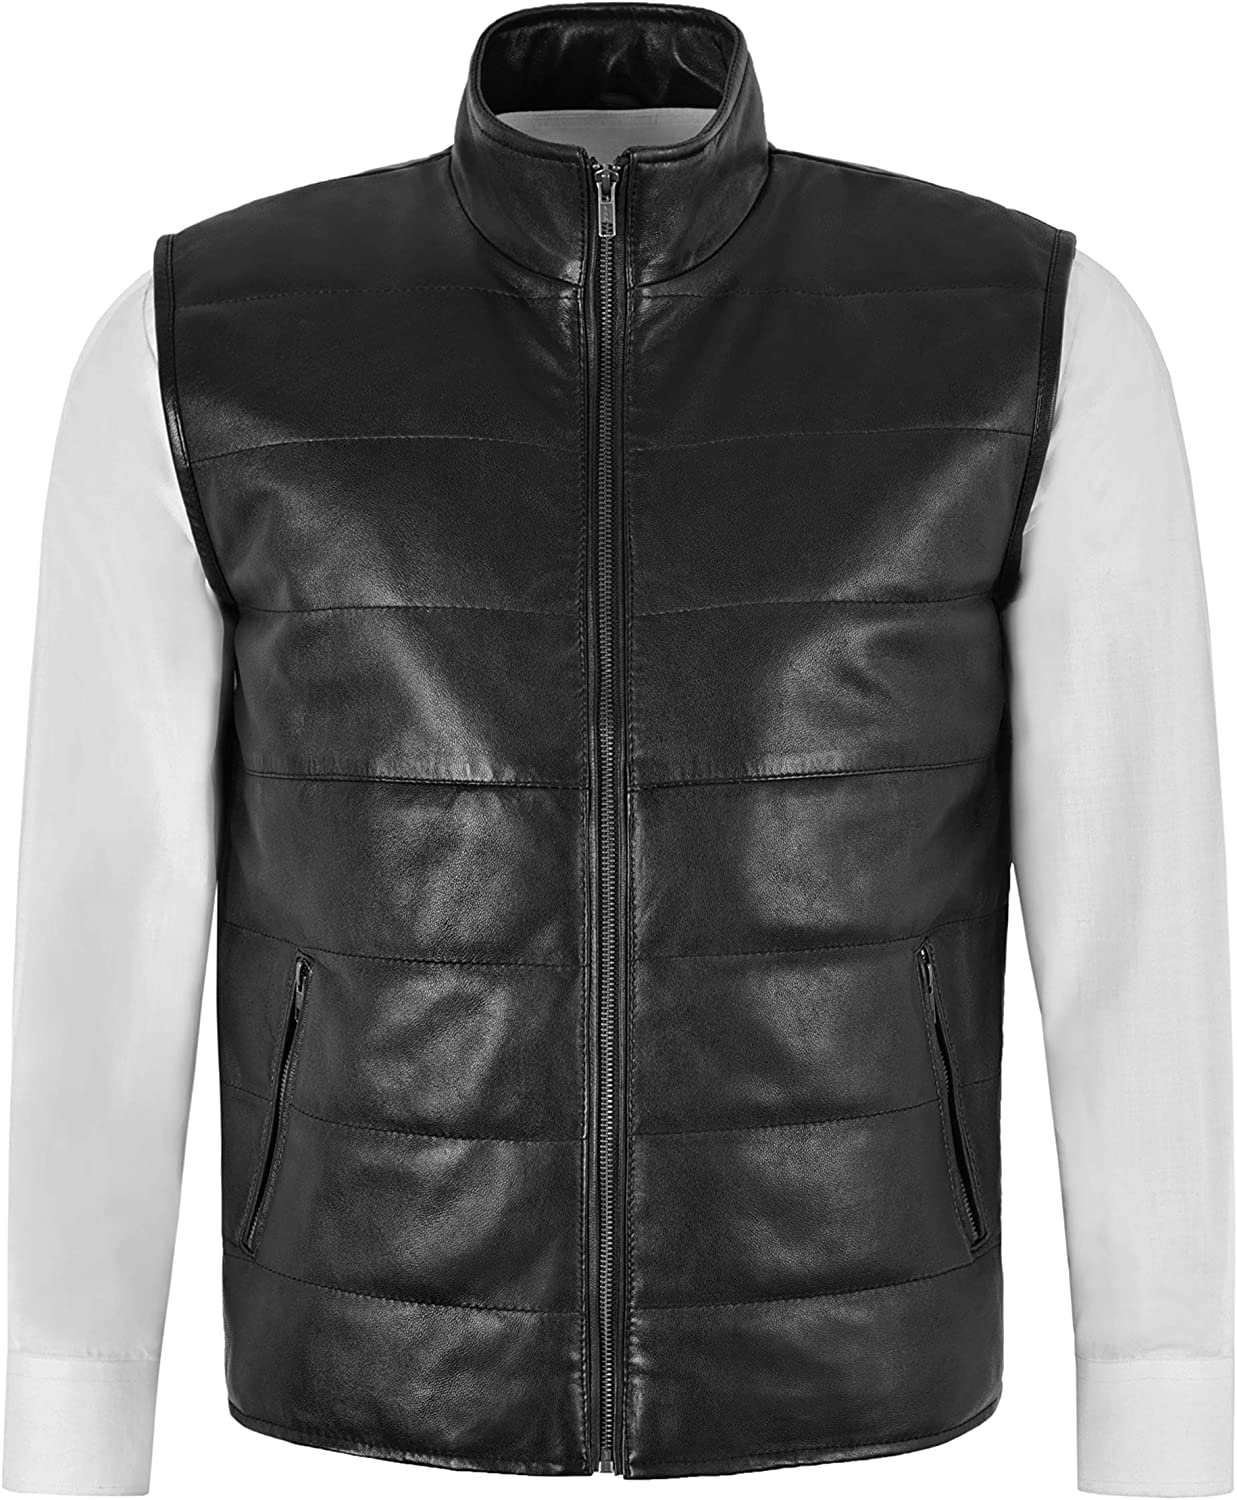 Men's Quilted Leather Waistcoat Black Real Nappa Leather Fashion Gilet Vest 1799